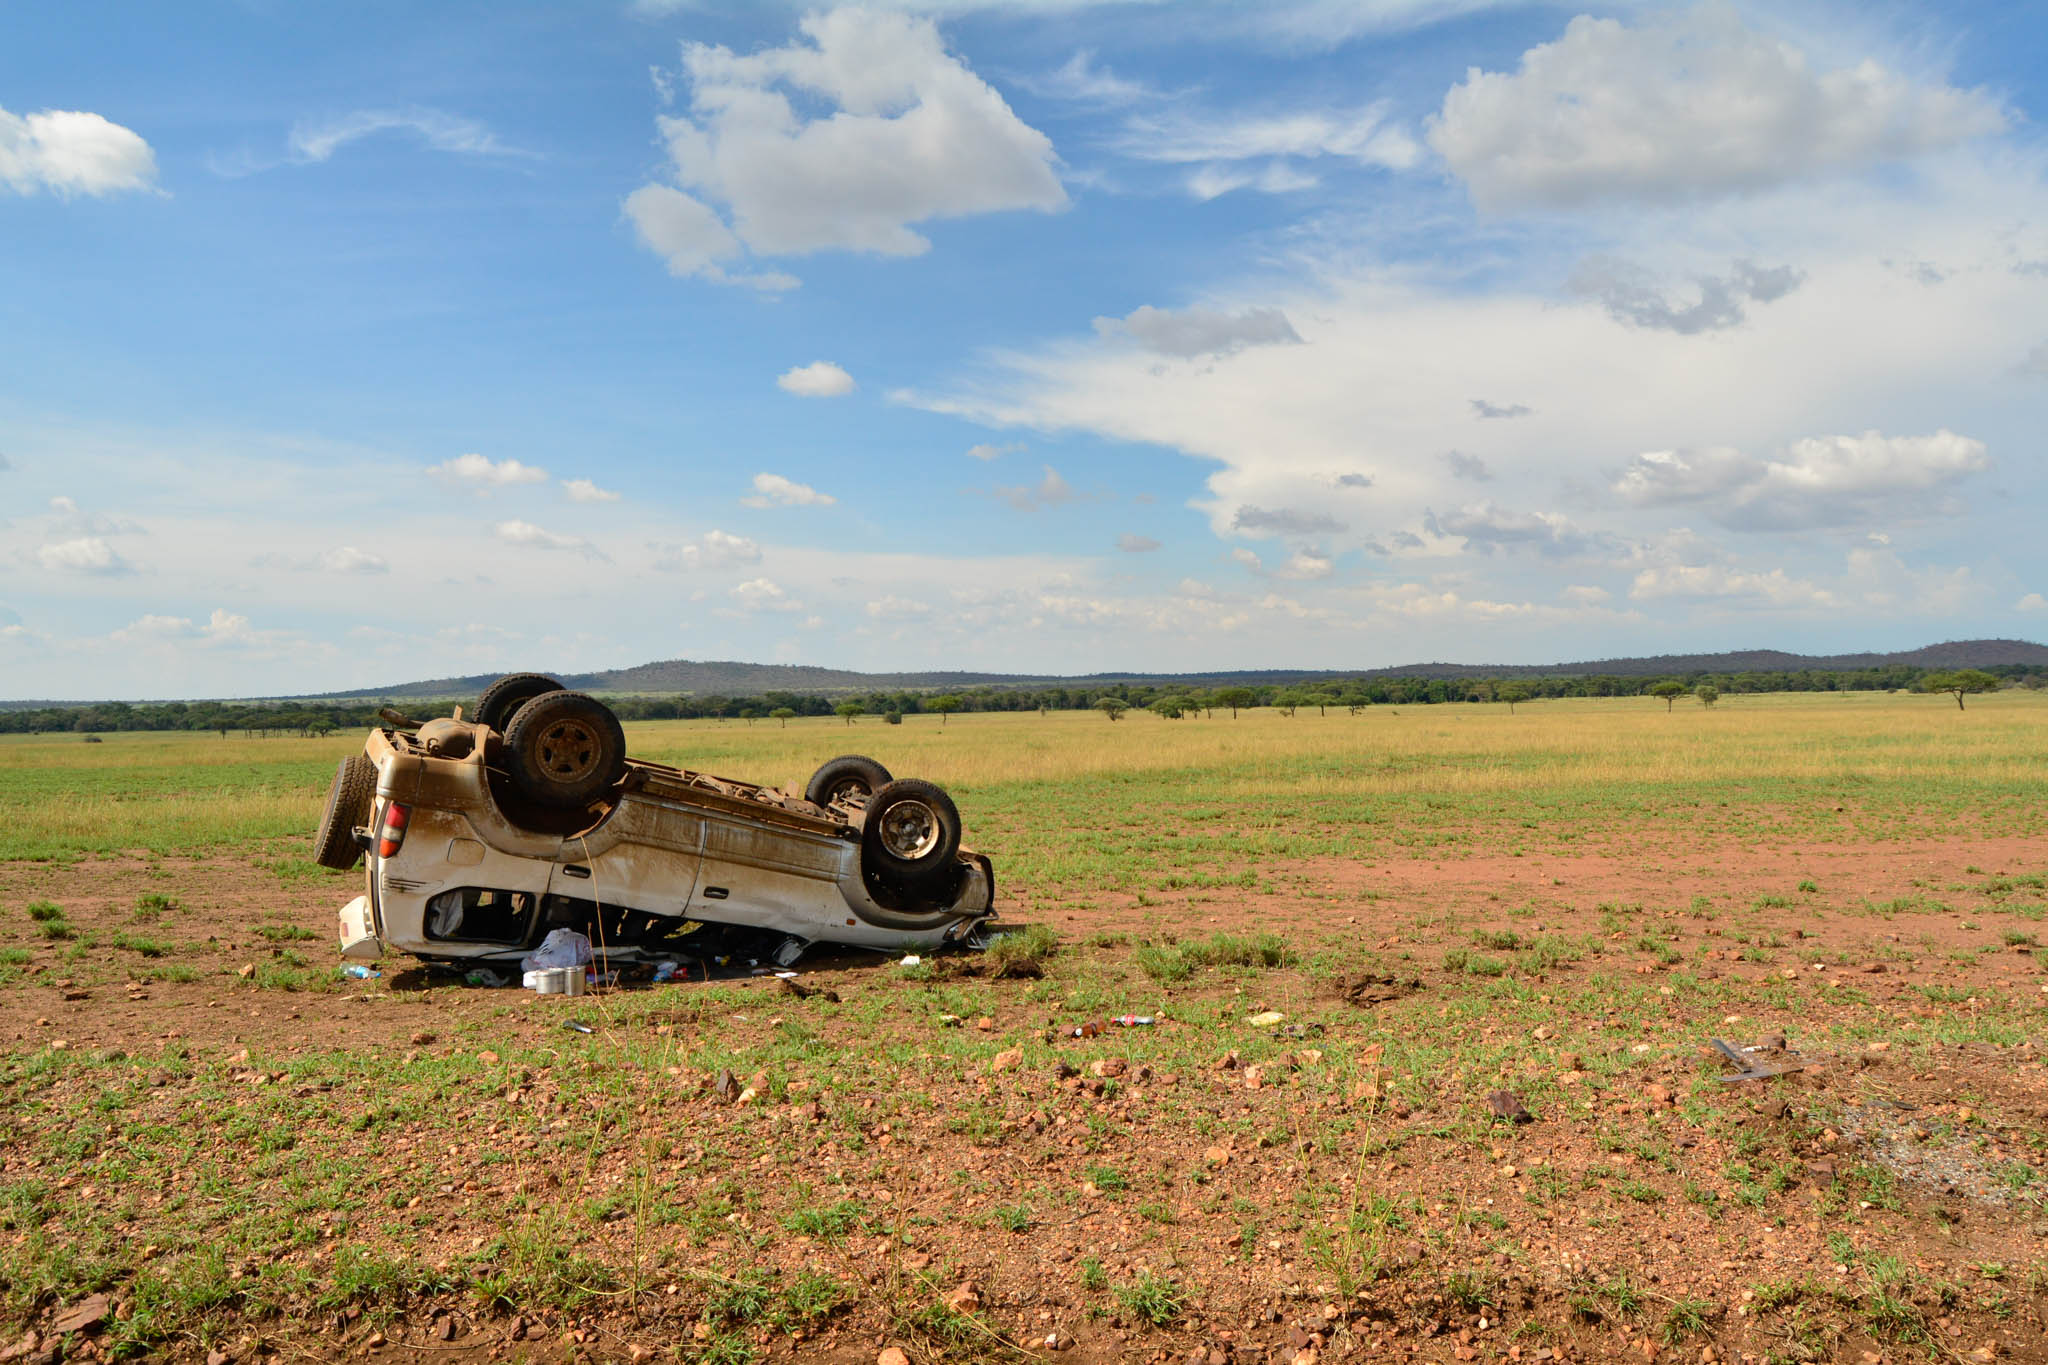 A vehicle overturned in the Serengeti. It looked like it may have happened a couple of days ago.